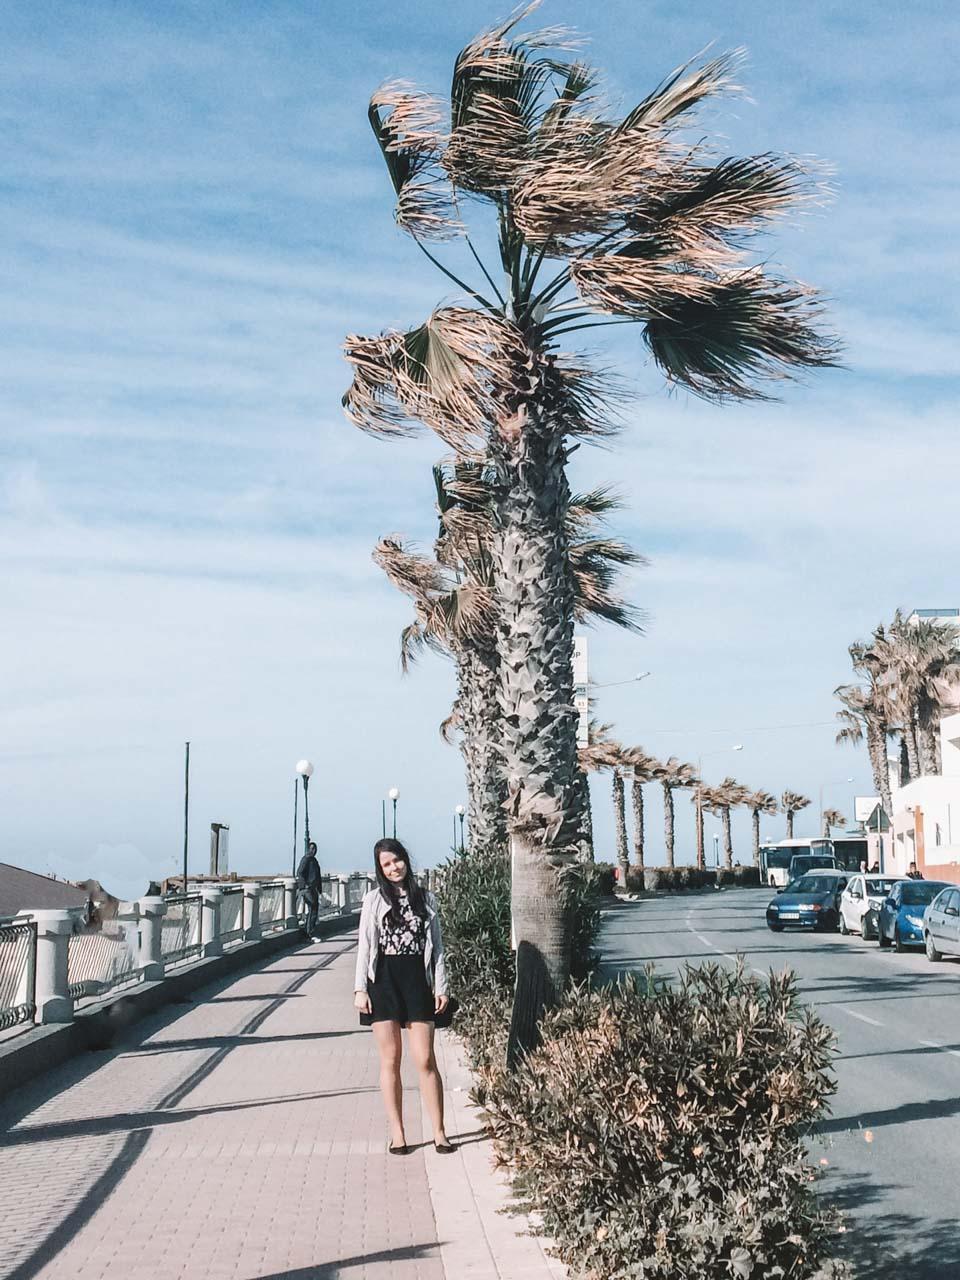 A girl standing on a promenade lined with palm trees in Bugibba, Malta